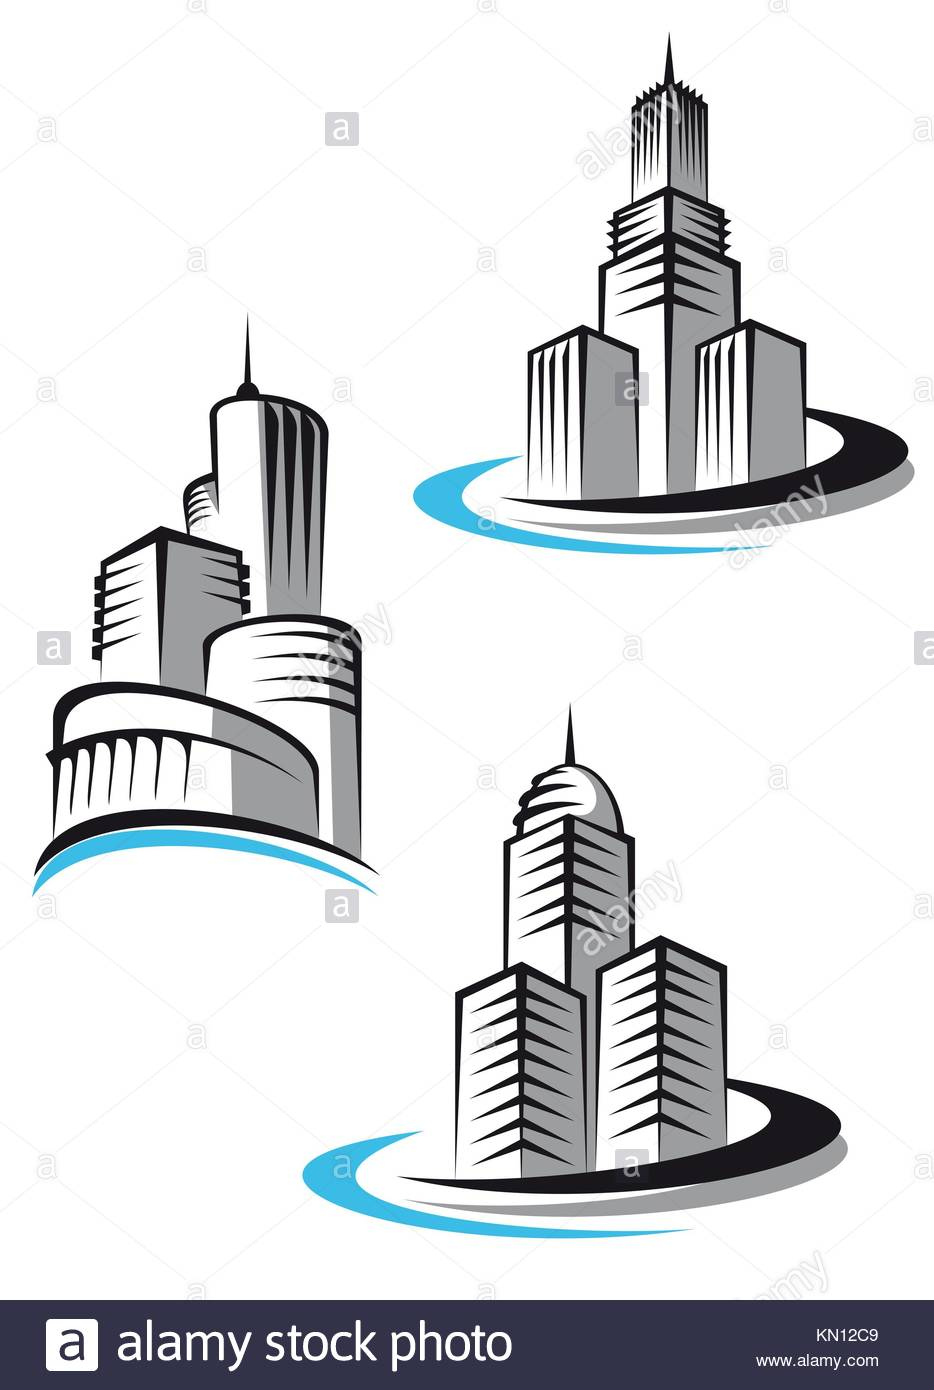 Skyscrapers And Real Estate Symbols For Design And Decorate Stock